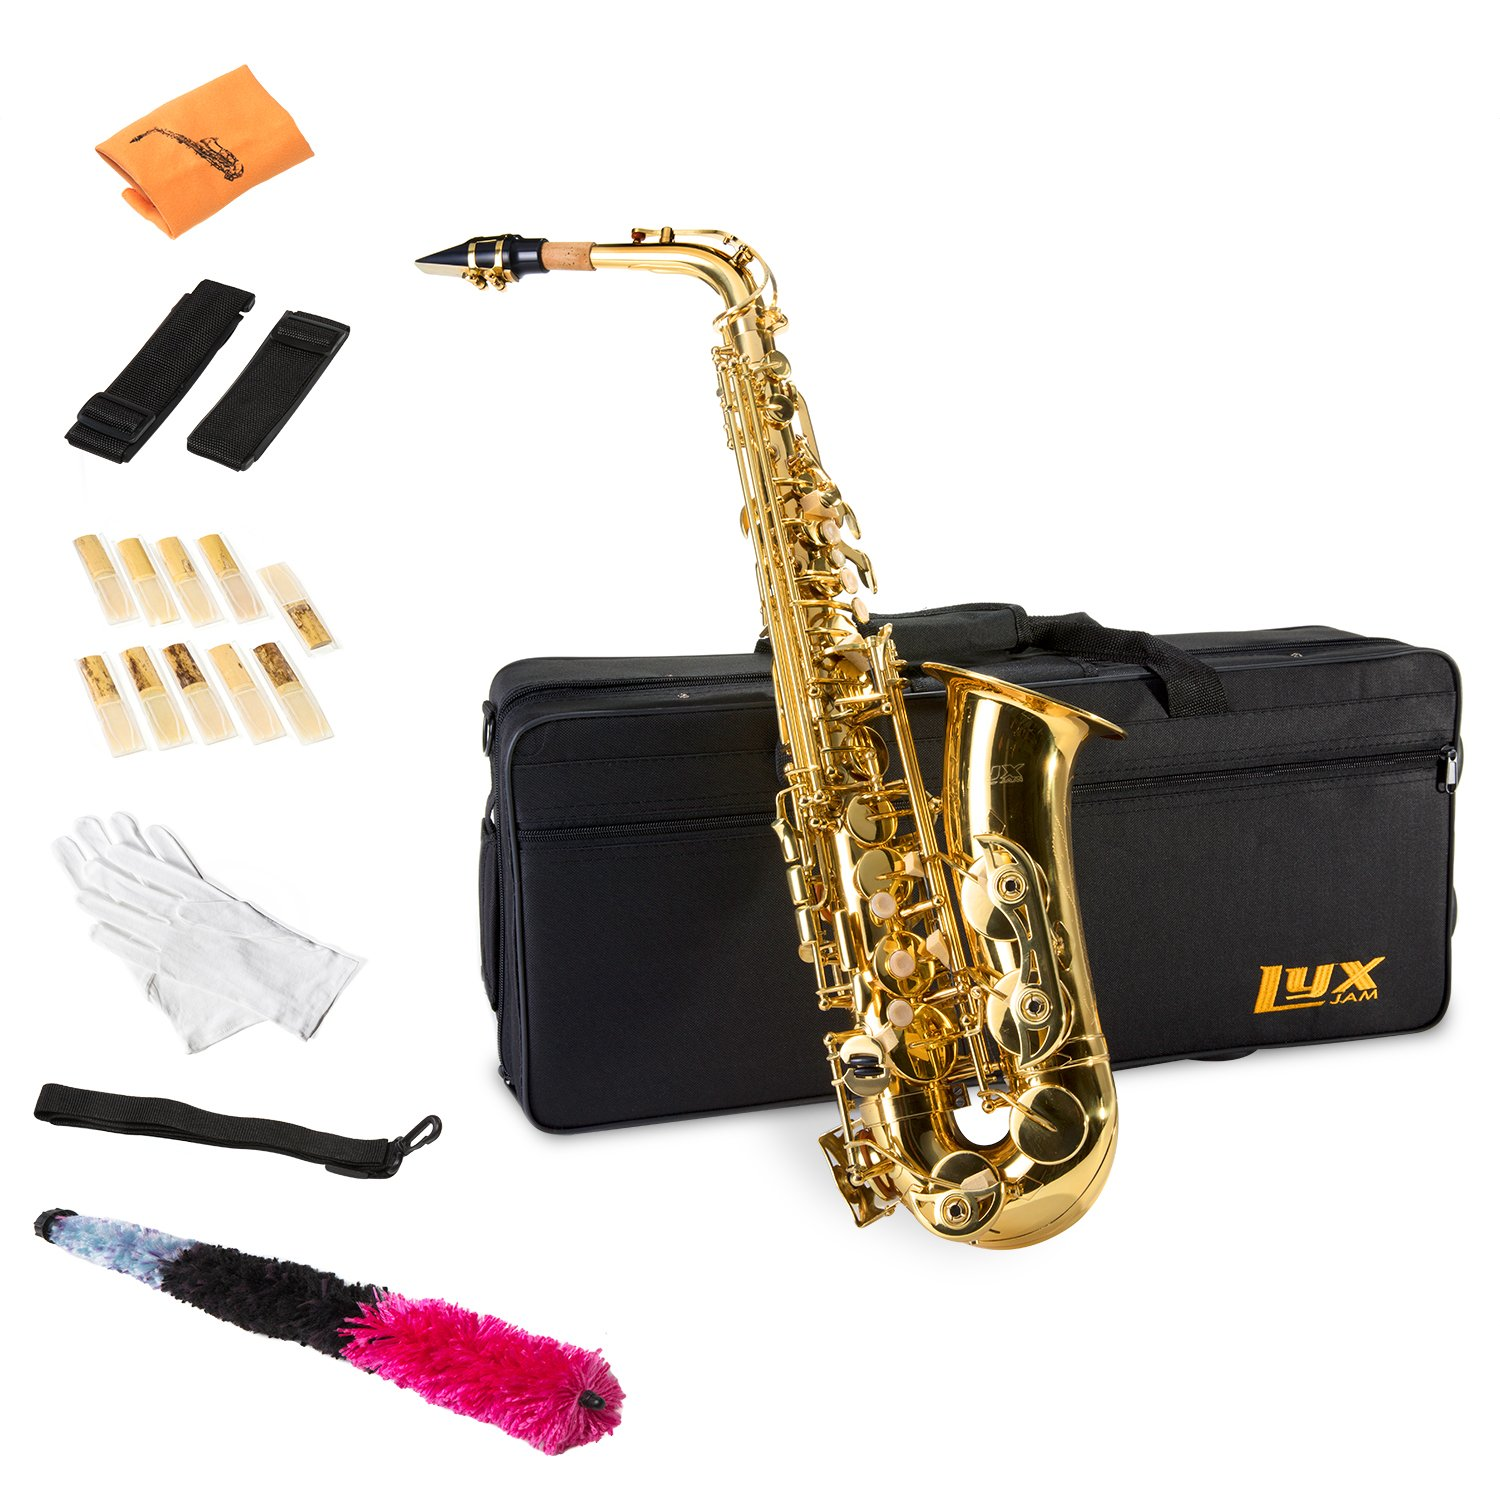 LyxJam Alto Saxophone  E Flat Brass Sax Beginners Kit, Mouthpiece, Neck Strap, Cleaning Cloth Rod, Gloves, Hard Carrying Case w Removable Straps, Maintenance Guide 10 Bonus Reeds